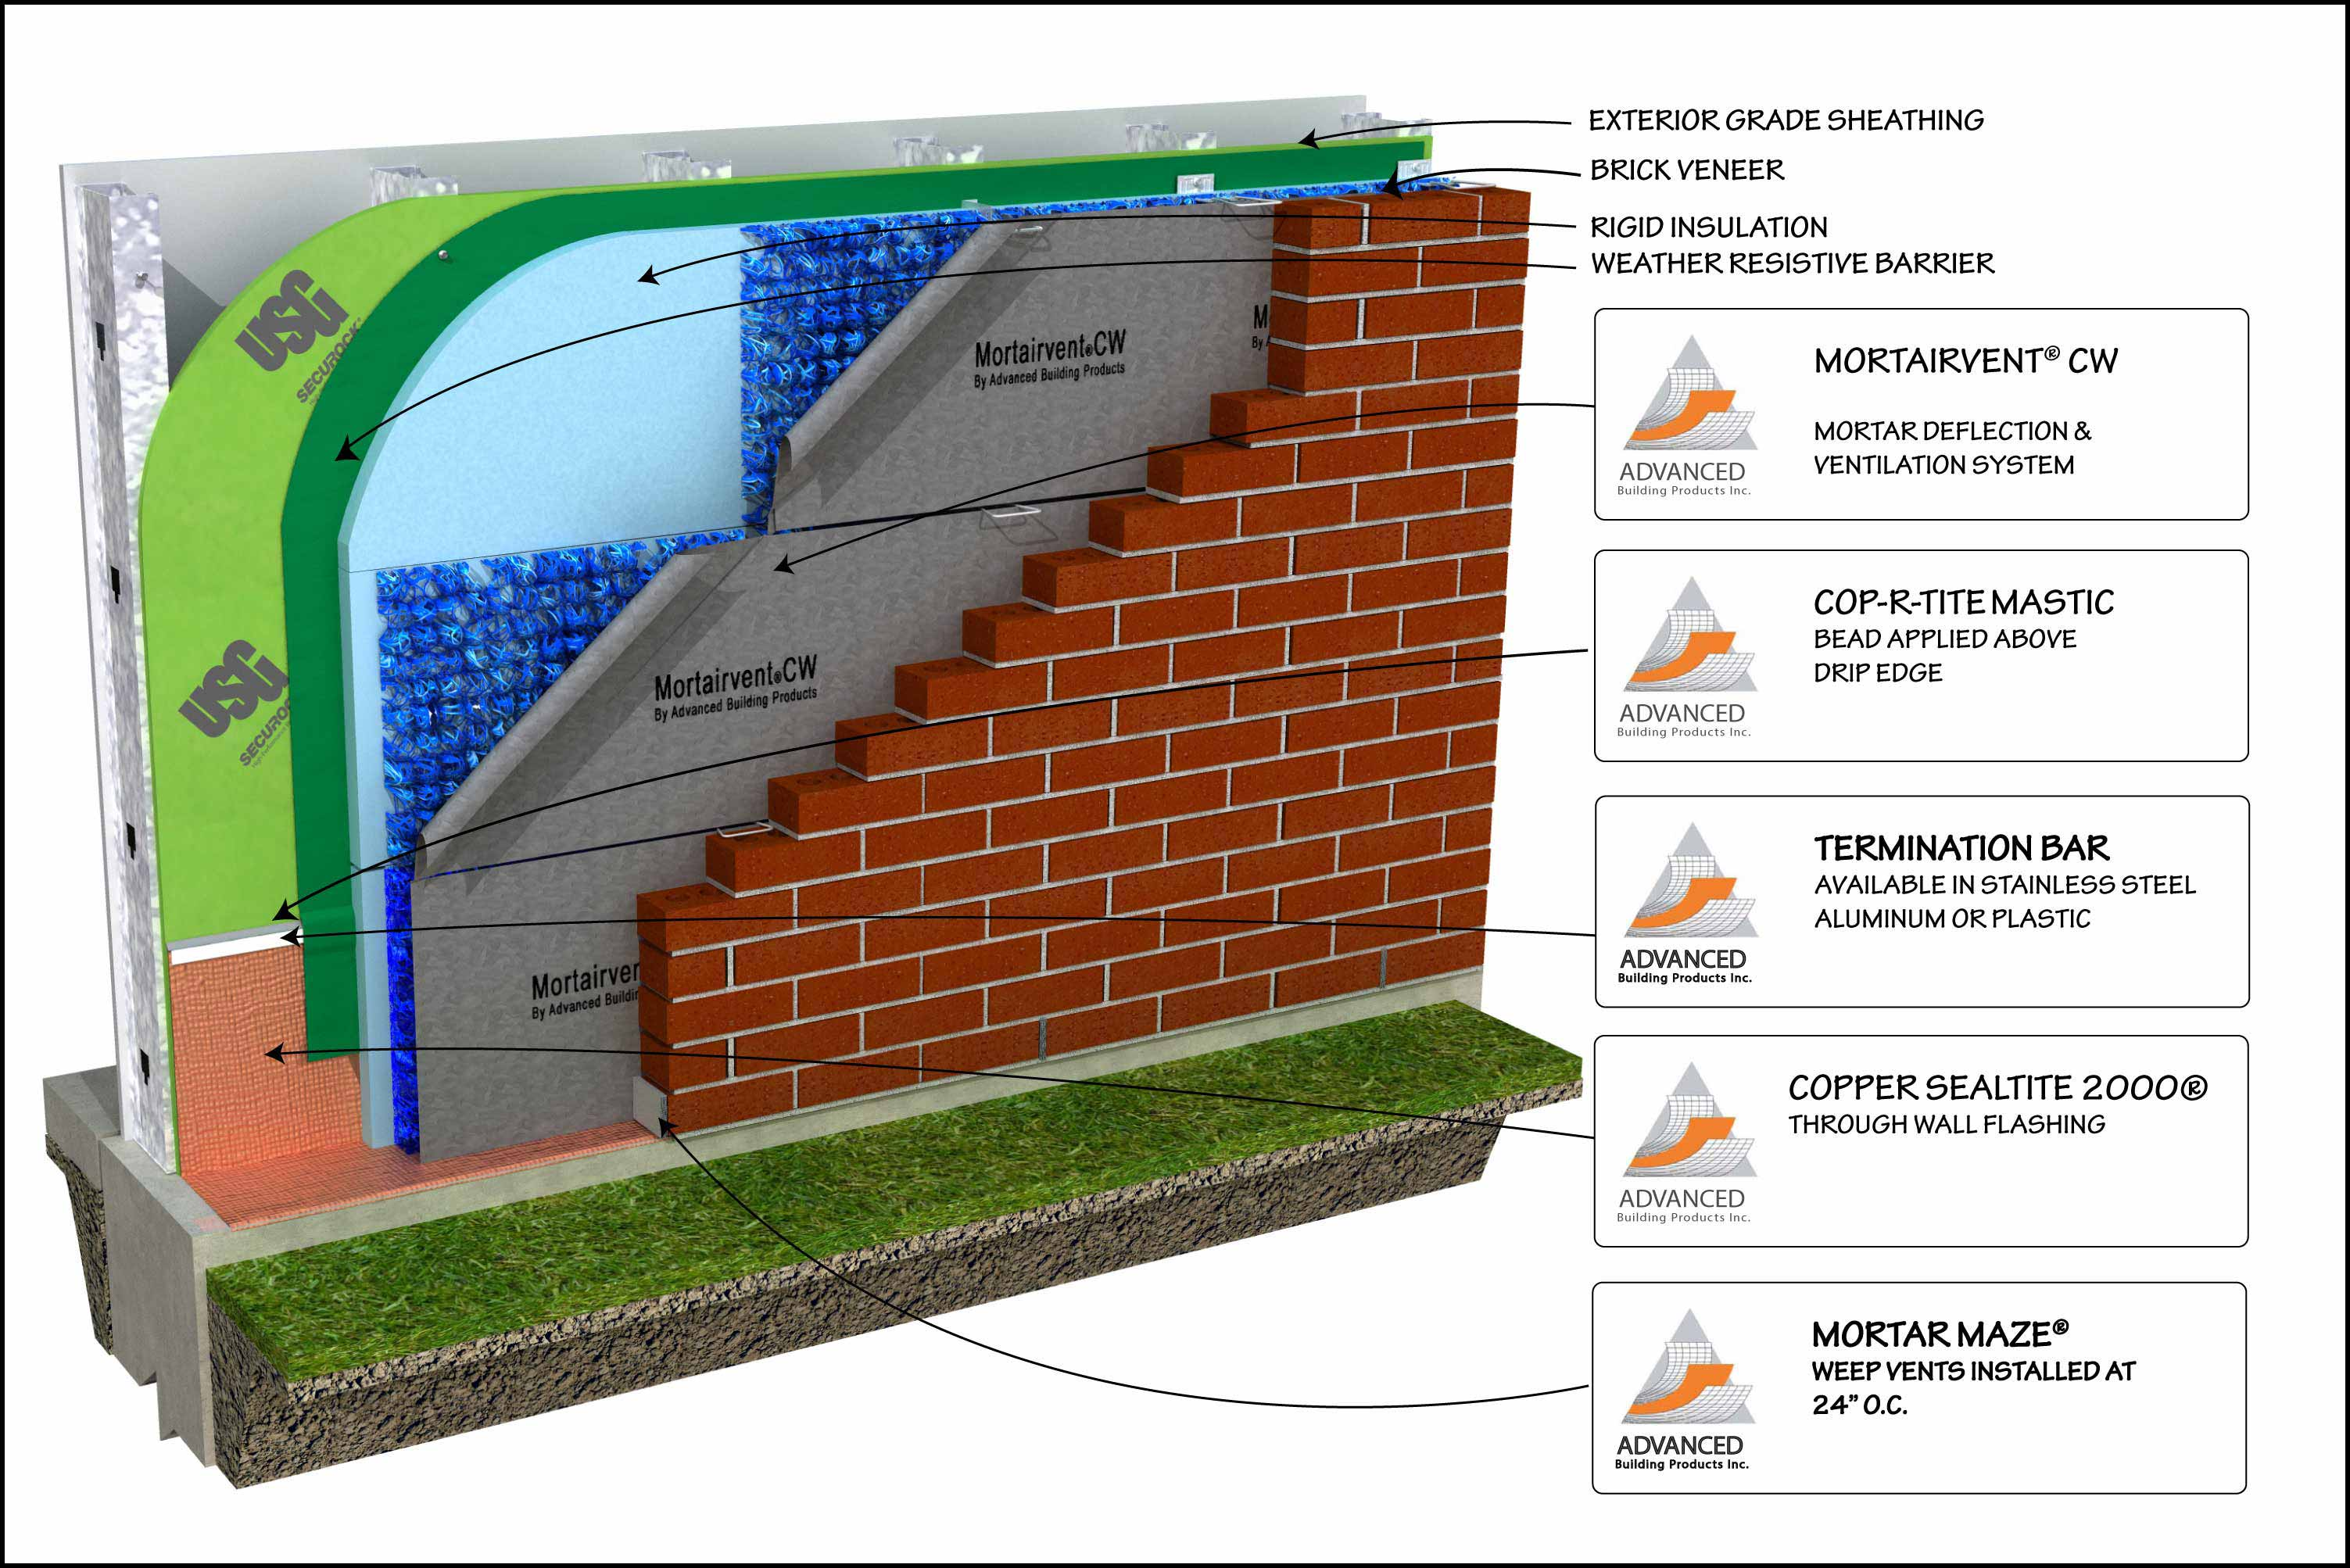 Advanced Building Products: Mortairvent CW